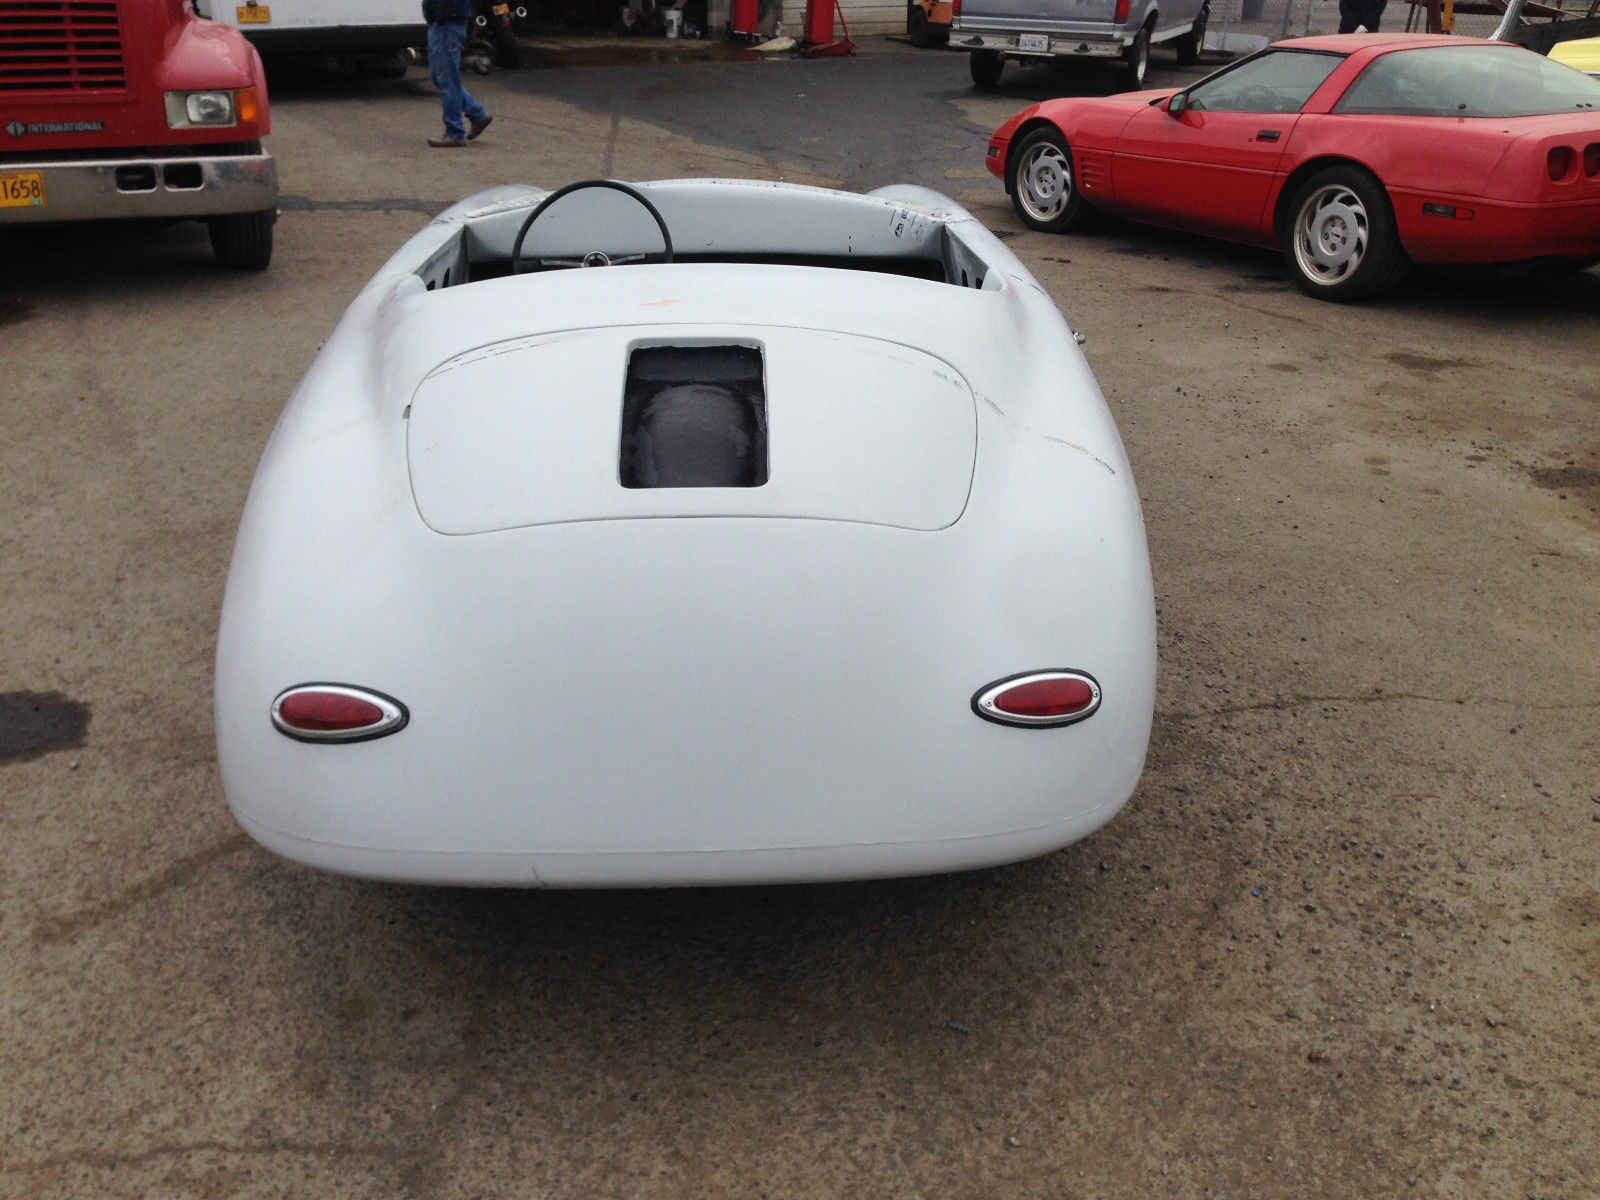 1956 356 Porsche Replica Kit Car For Sale In Medford